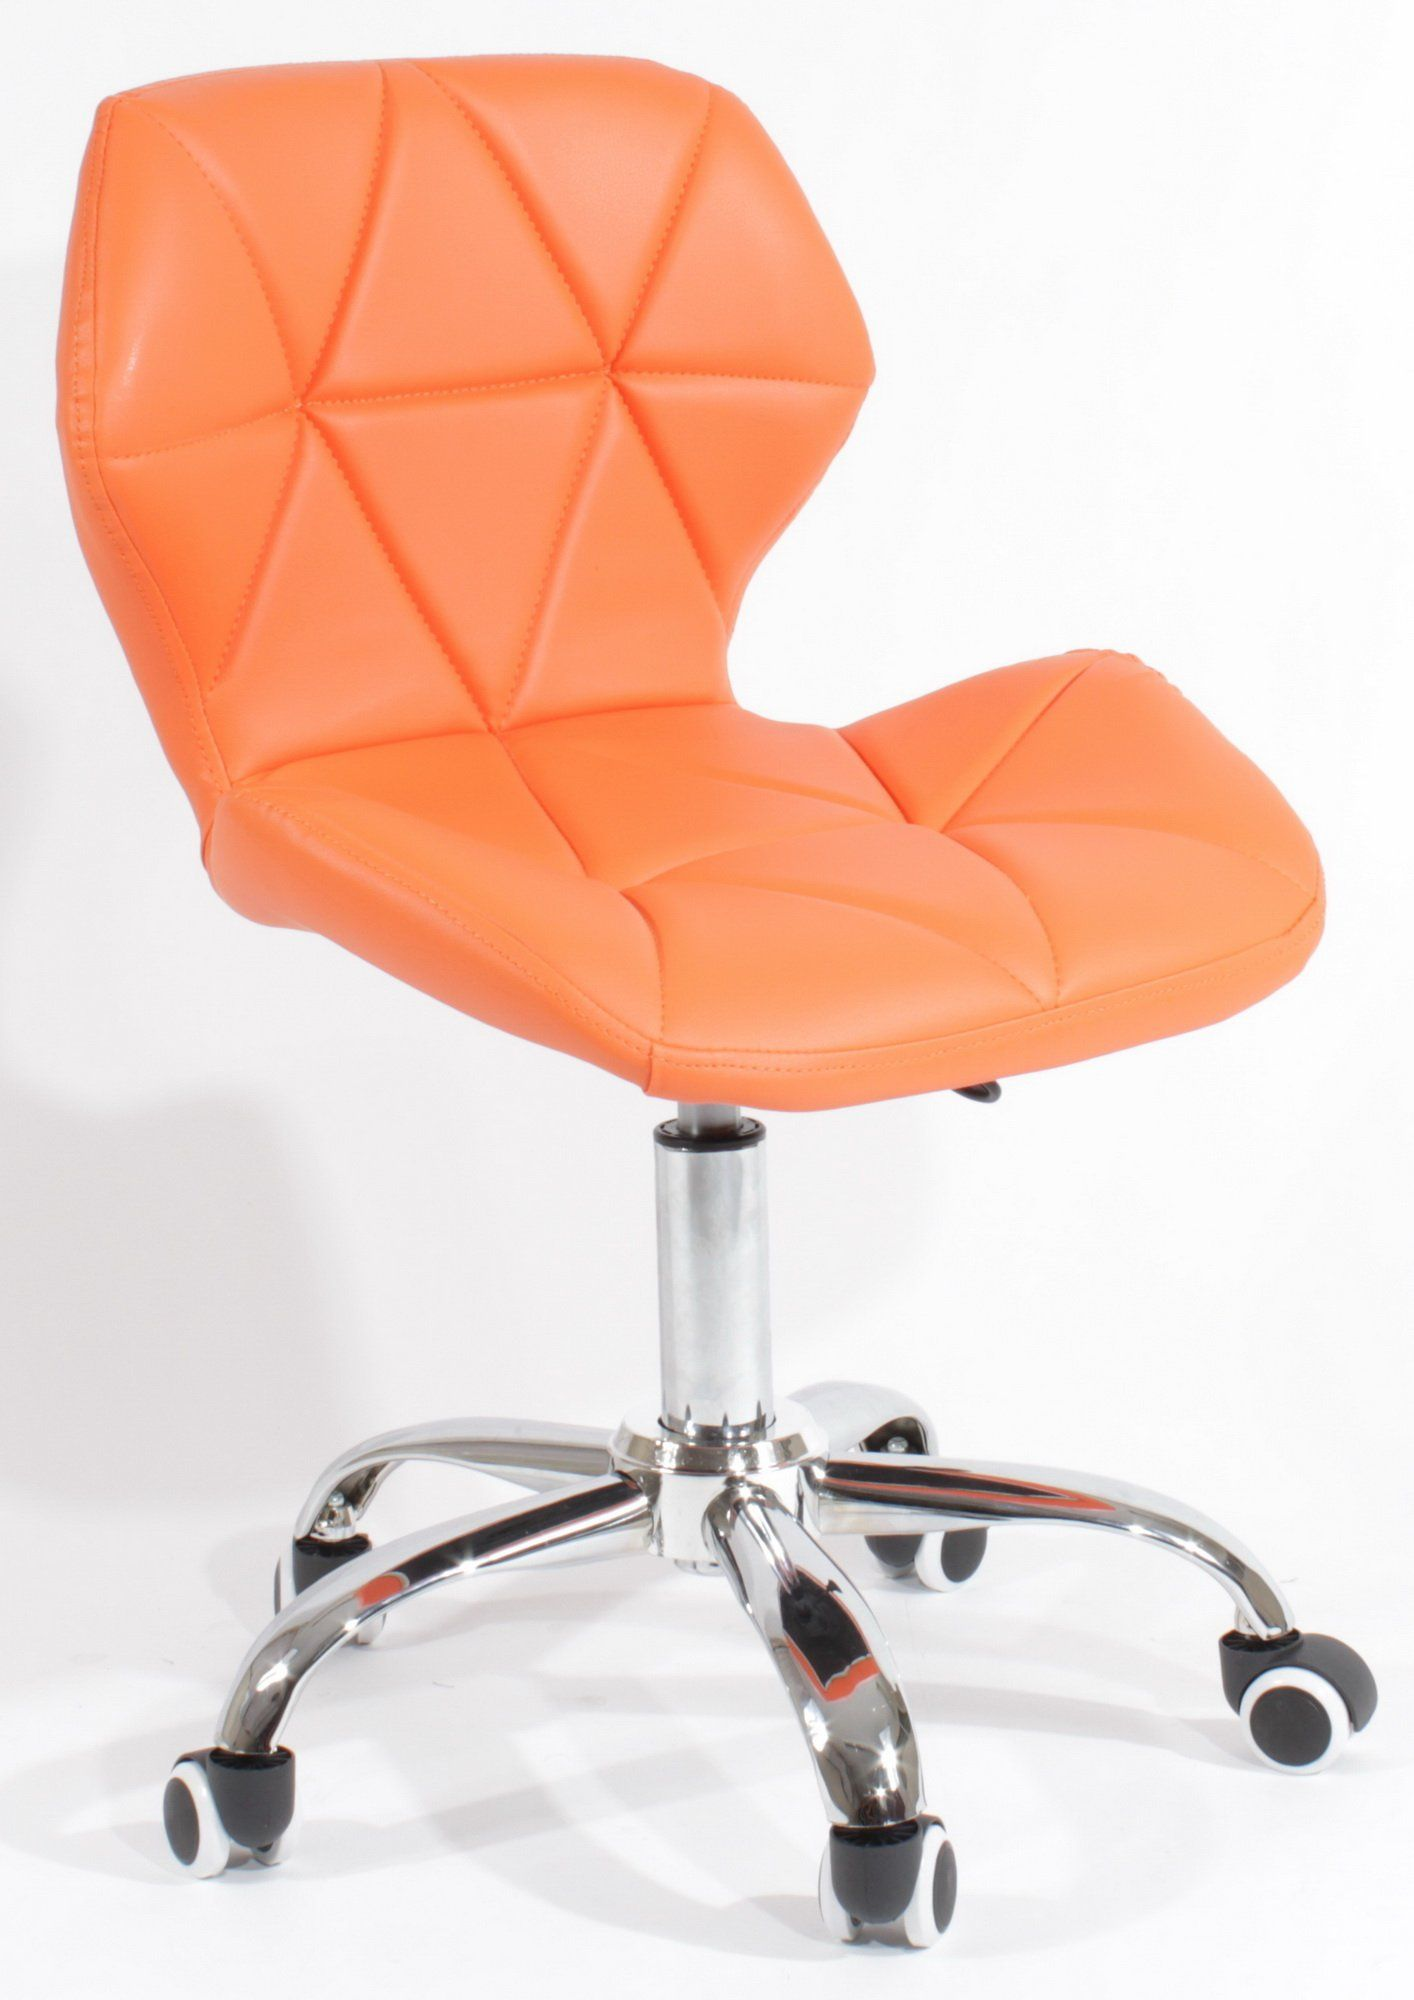 Charles Jacobs Dining Office Chair With Chrome Legs With Wheels